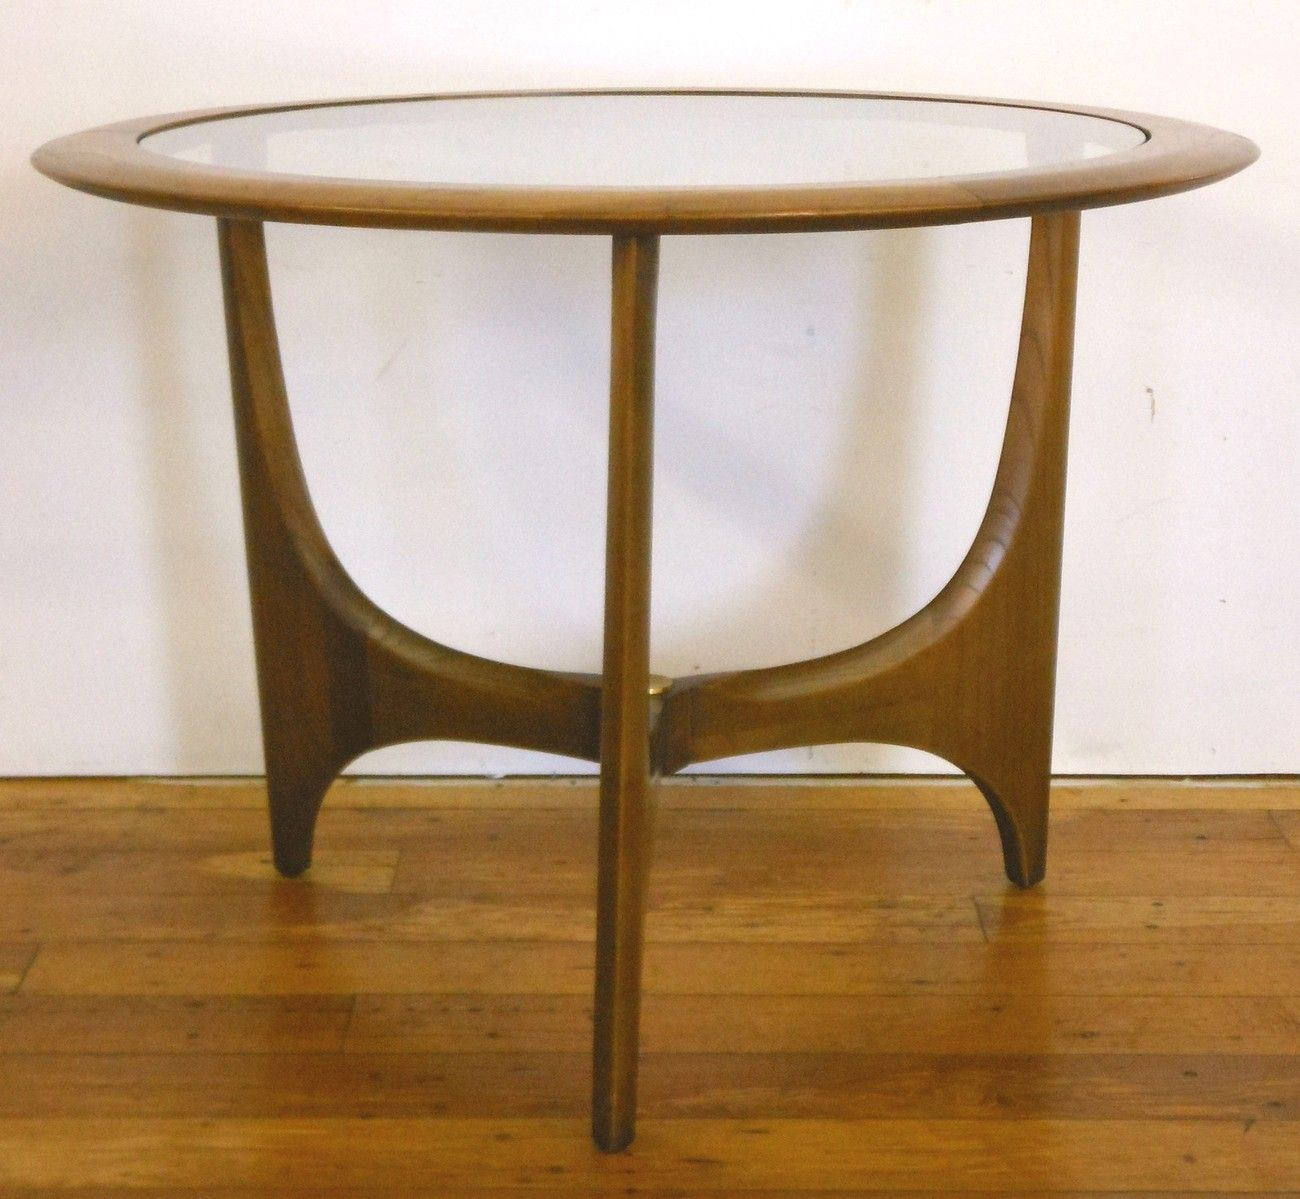 Vintage Mid Century Glass And Wood End Table By Lane Furniture Retro Side  Table